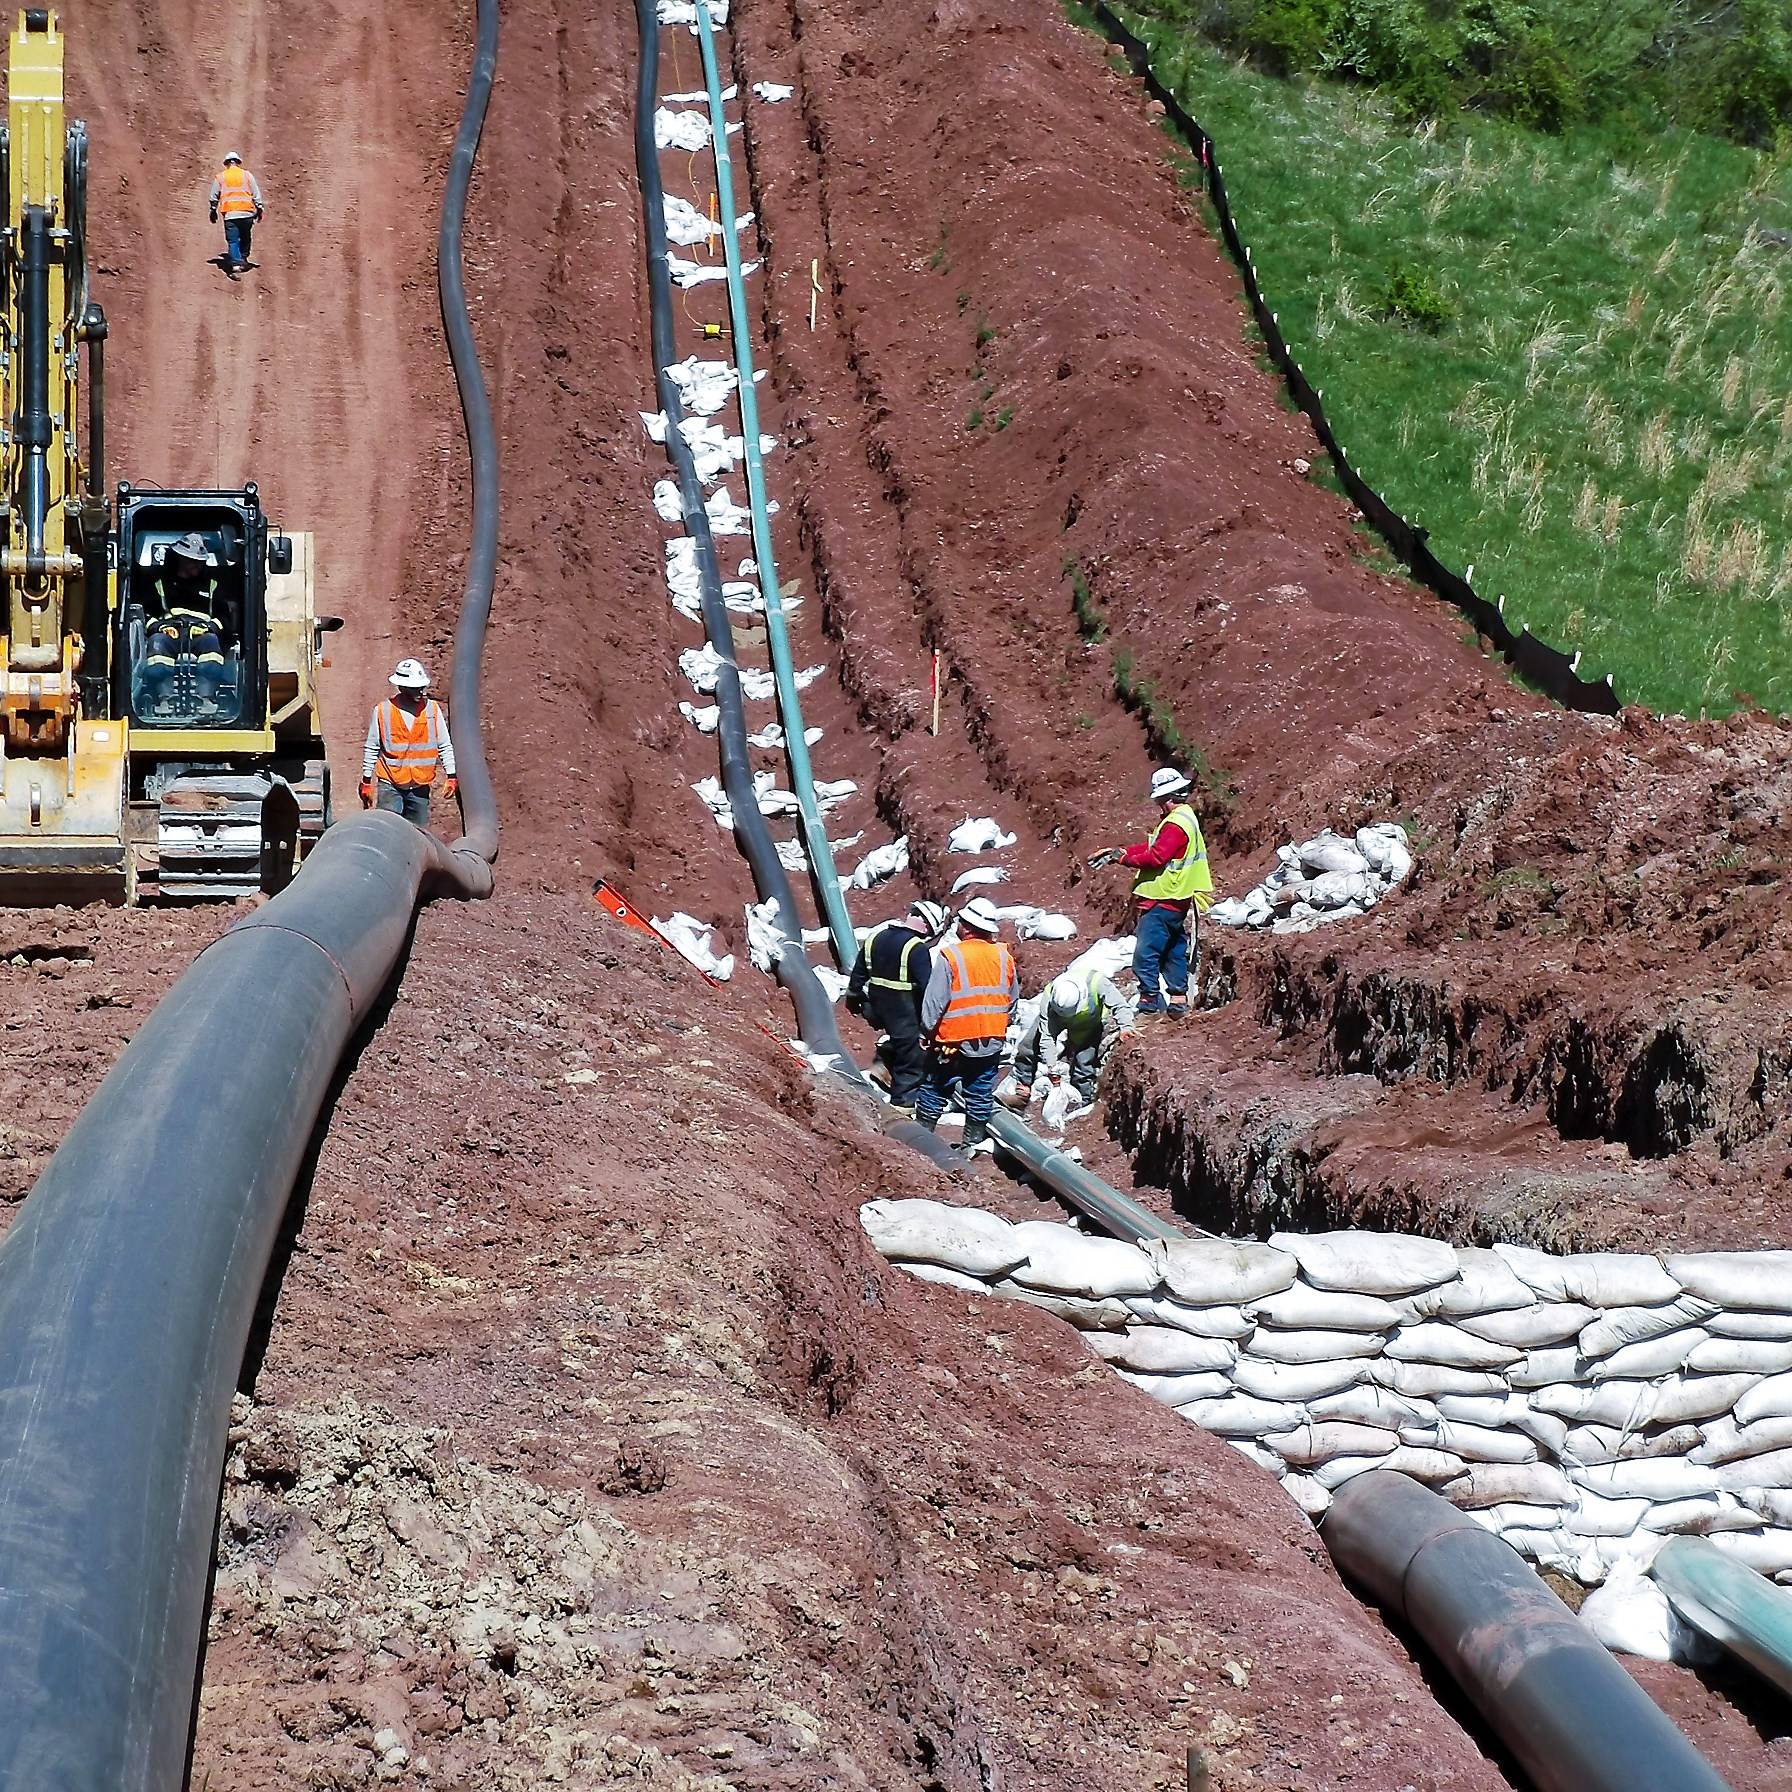 Water pipelines being installed along gas lines by an Ohio firm, Integrity Kokosing. Several companies want to build pipelines to supply drillers with water for fracking.